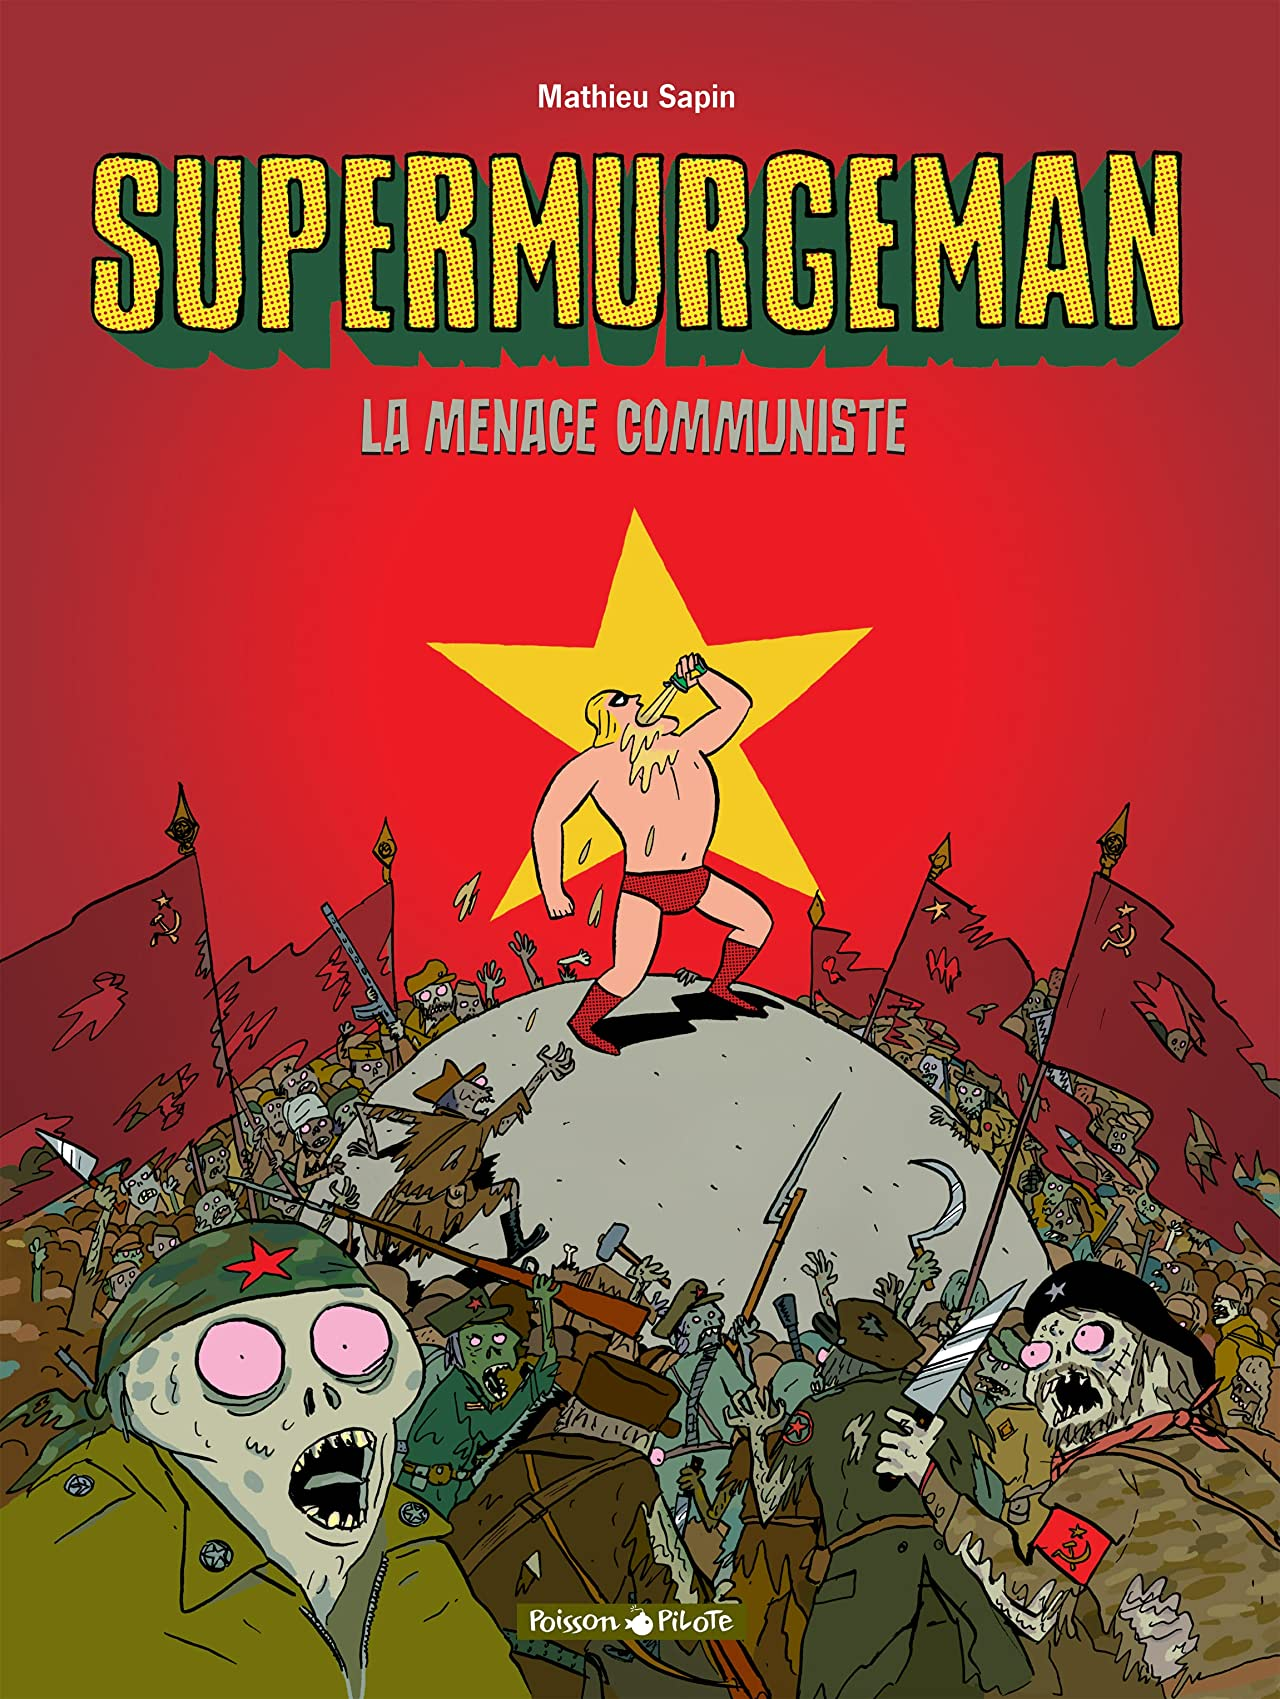 Supermurgeman Vol. 2: La menace communiste